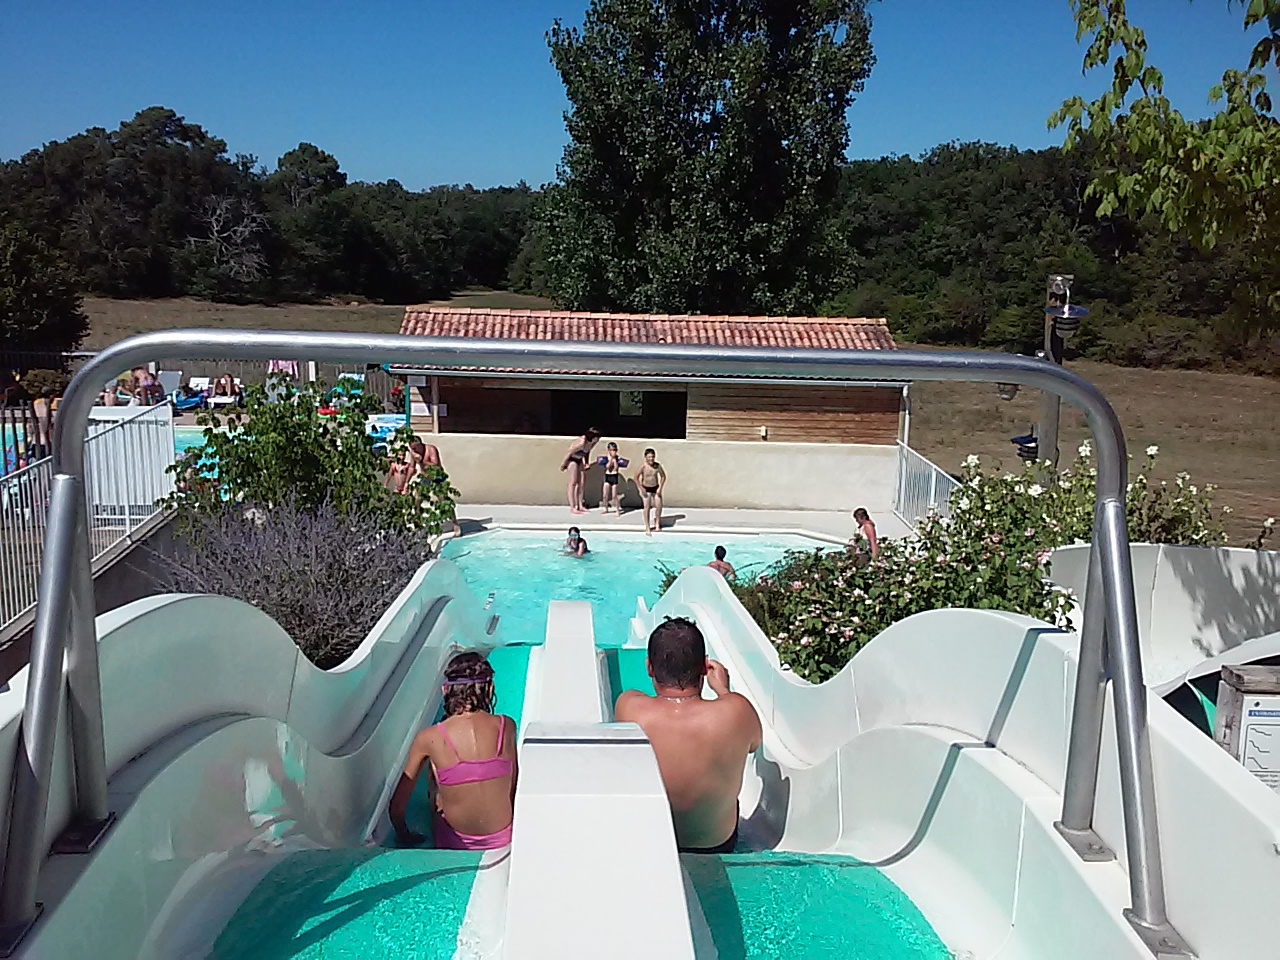 Camping dordogne pas cher 4 toiles promo camping for Camping sarlat avec piscine